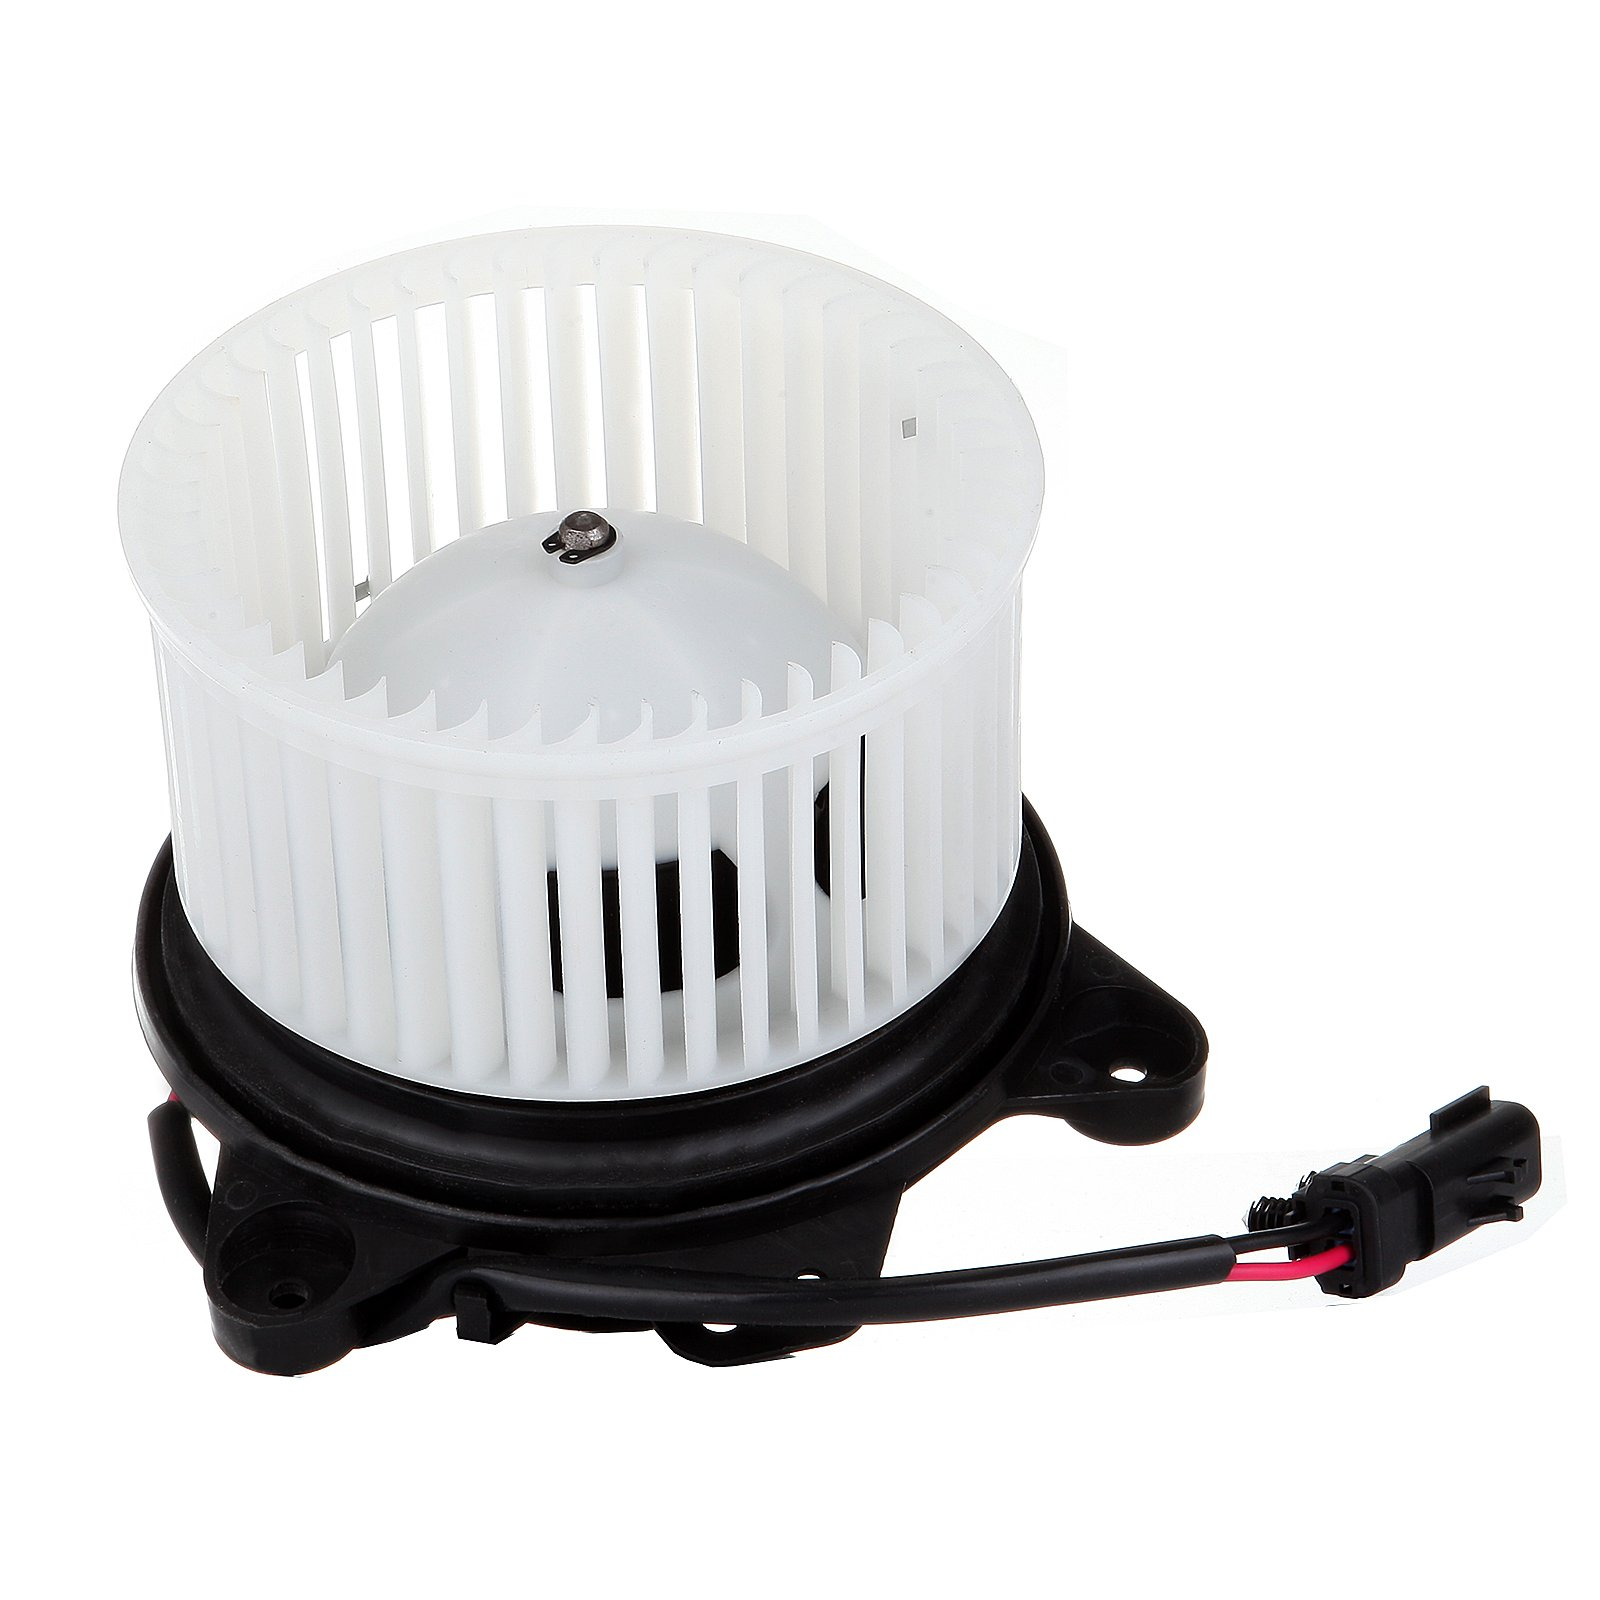 HVAC Plastic Heater Blower Motor w/Fan Cage Blower Motor Resistor ECCPP for 2001-2004 Dodge Dakota /2001-2003 Dodge Durango